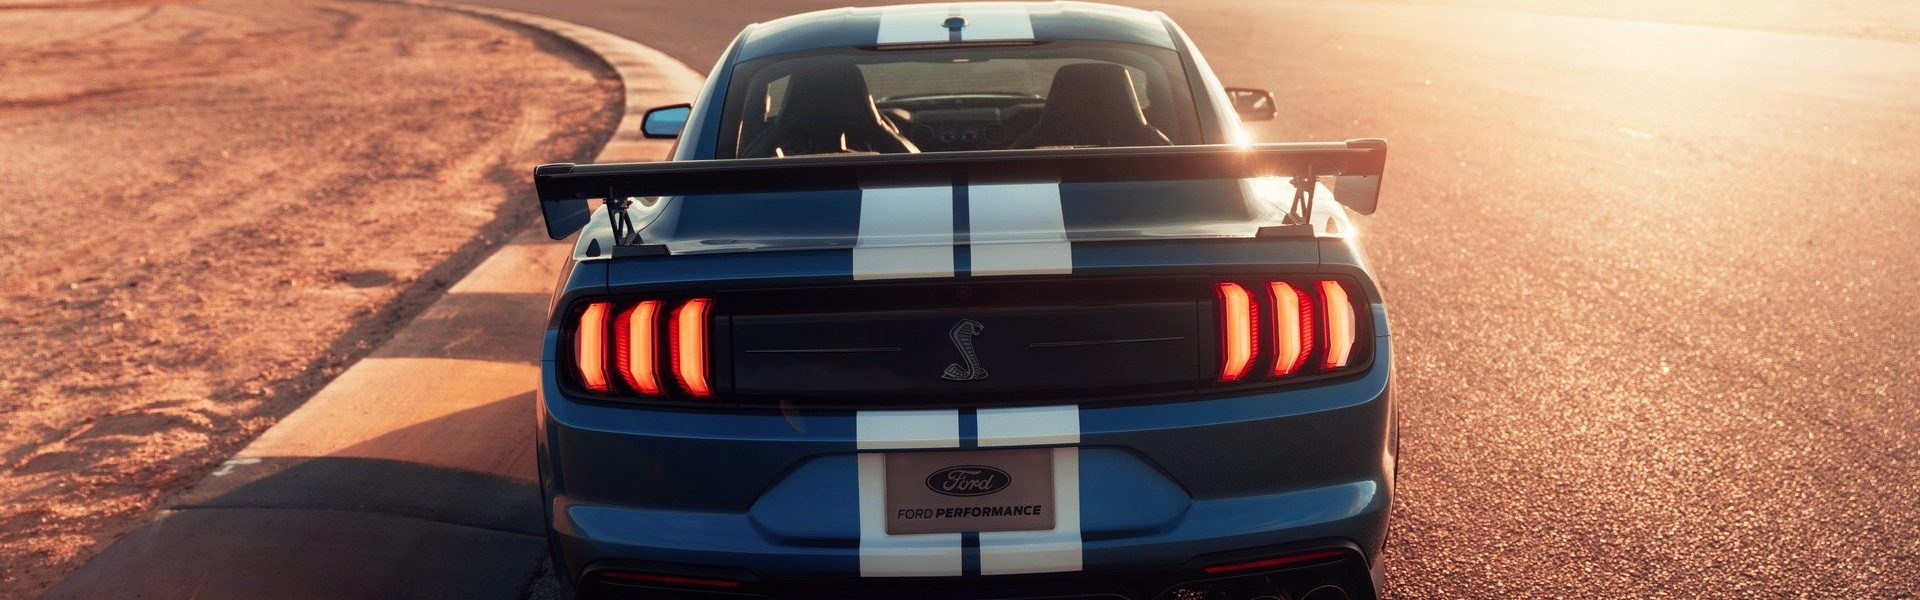 2020-ford-mustang-shelby-gt500-6.jpg